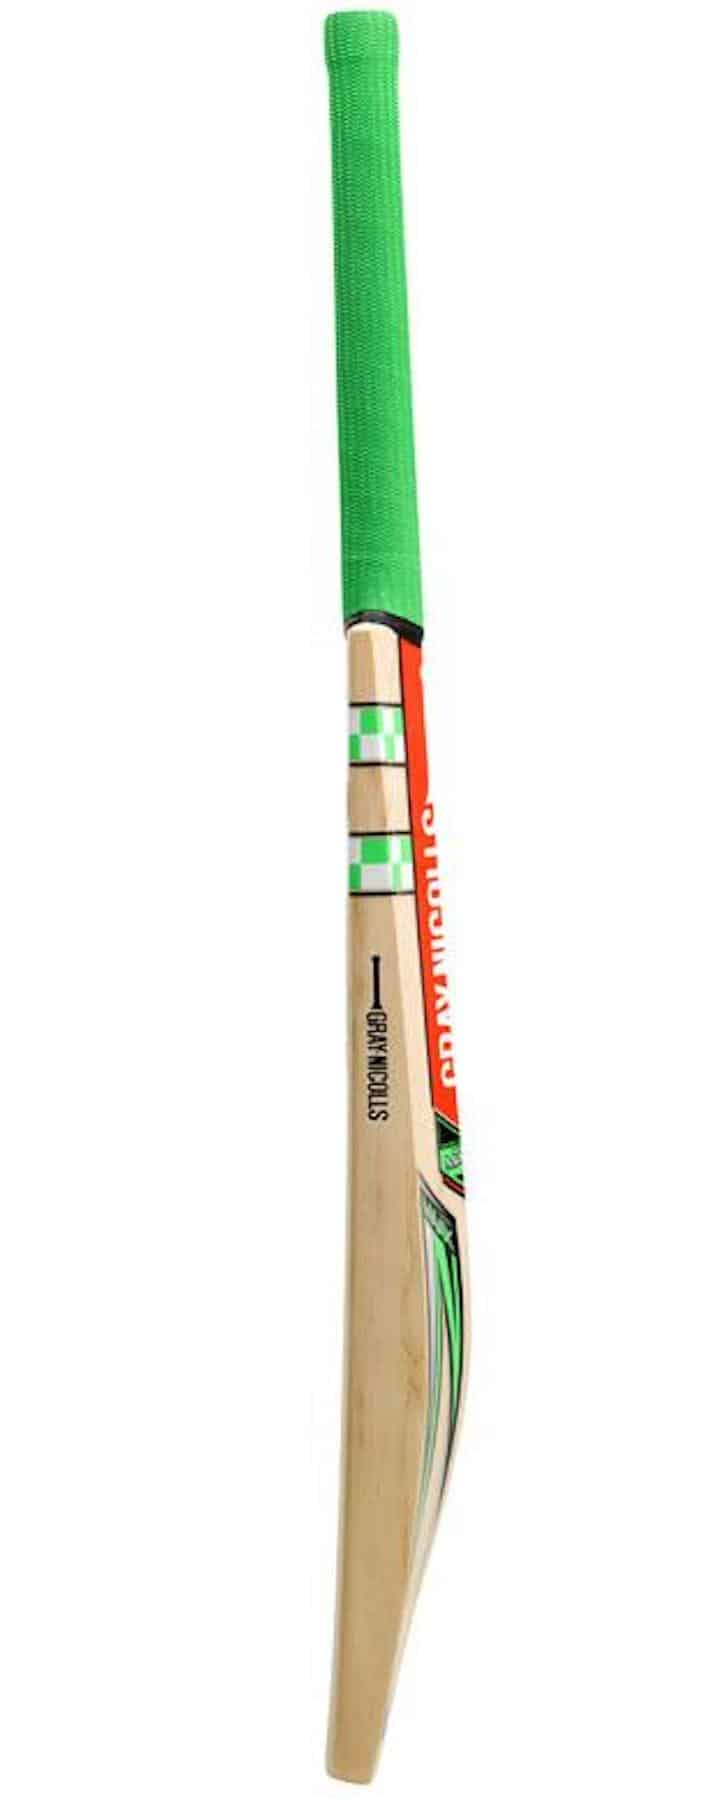 Gray Nicolld Maax Cricket Bat side